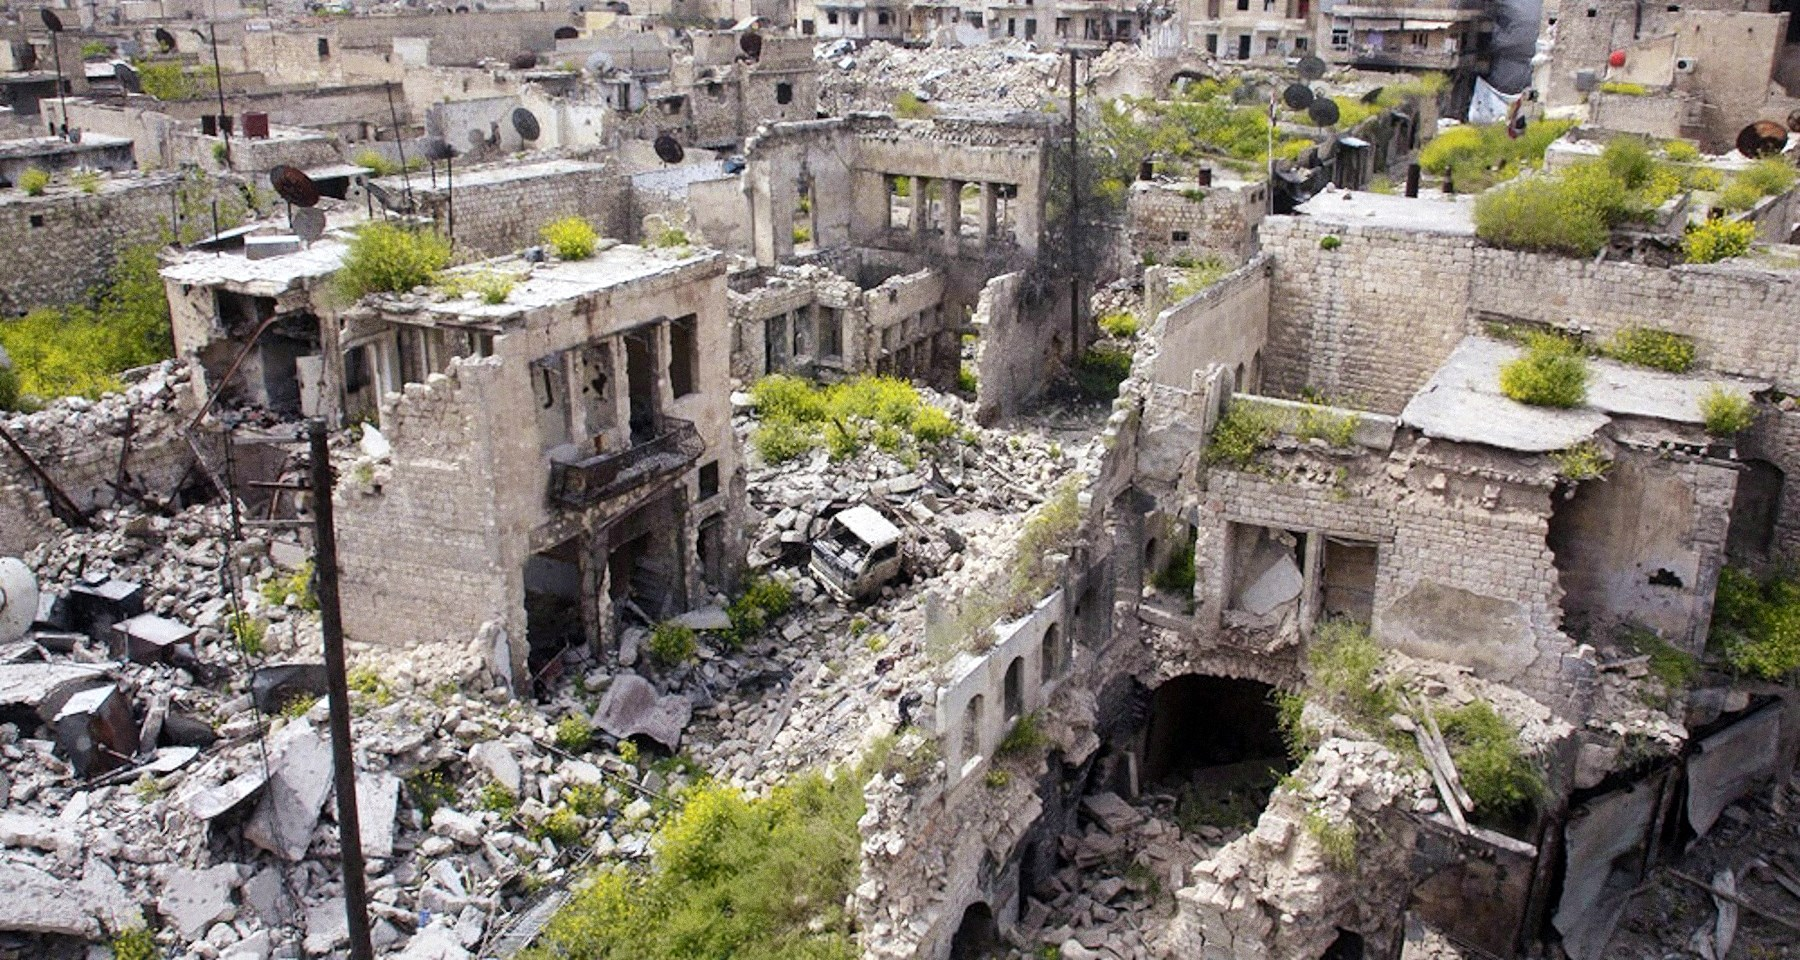 00 syria war damage 110815